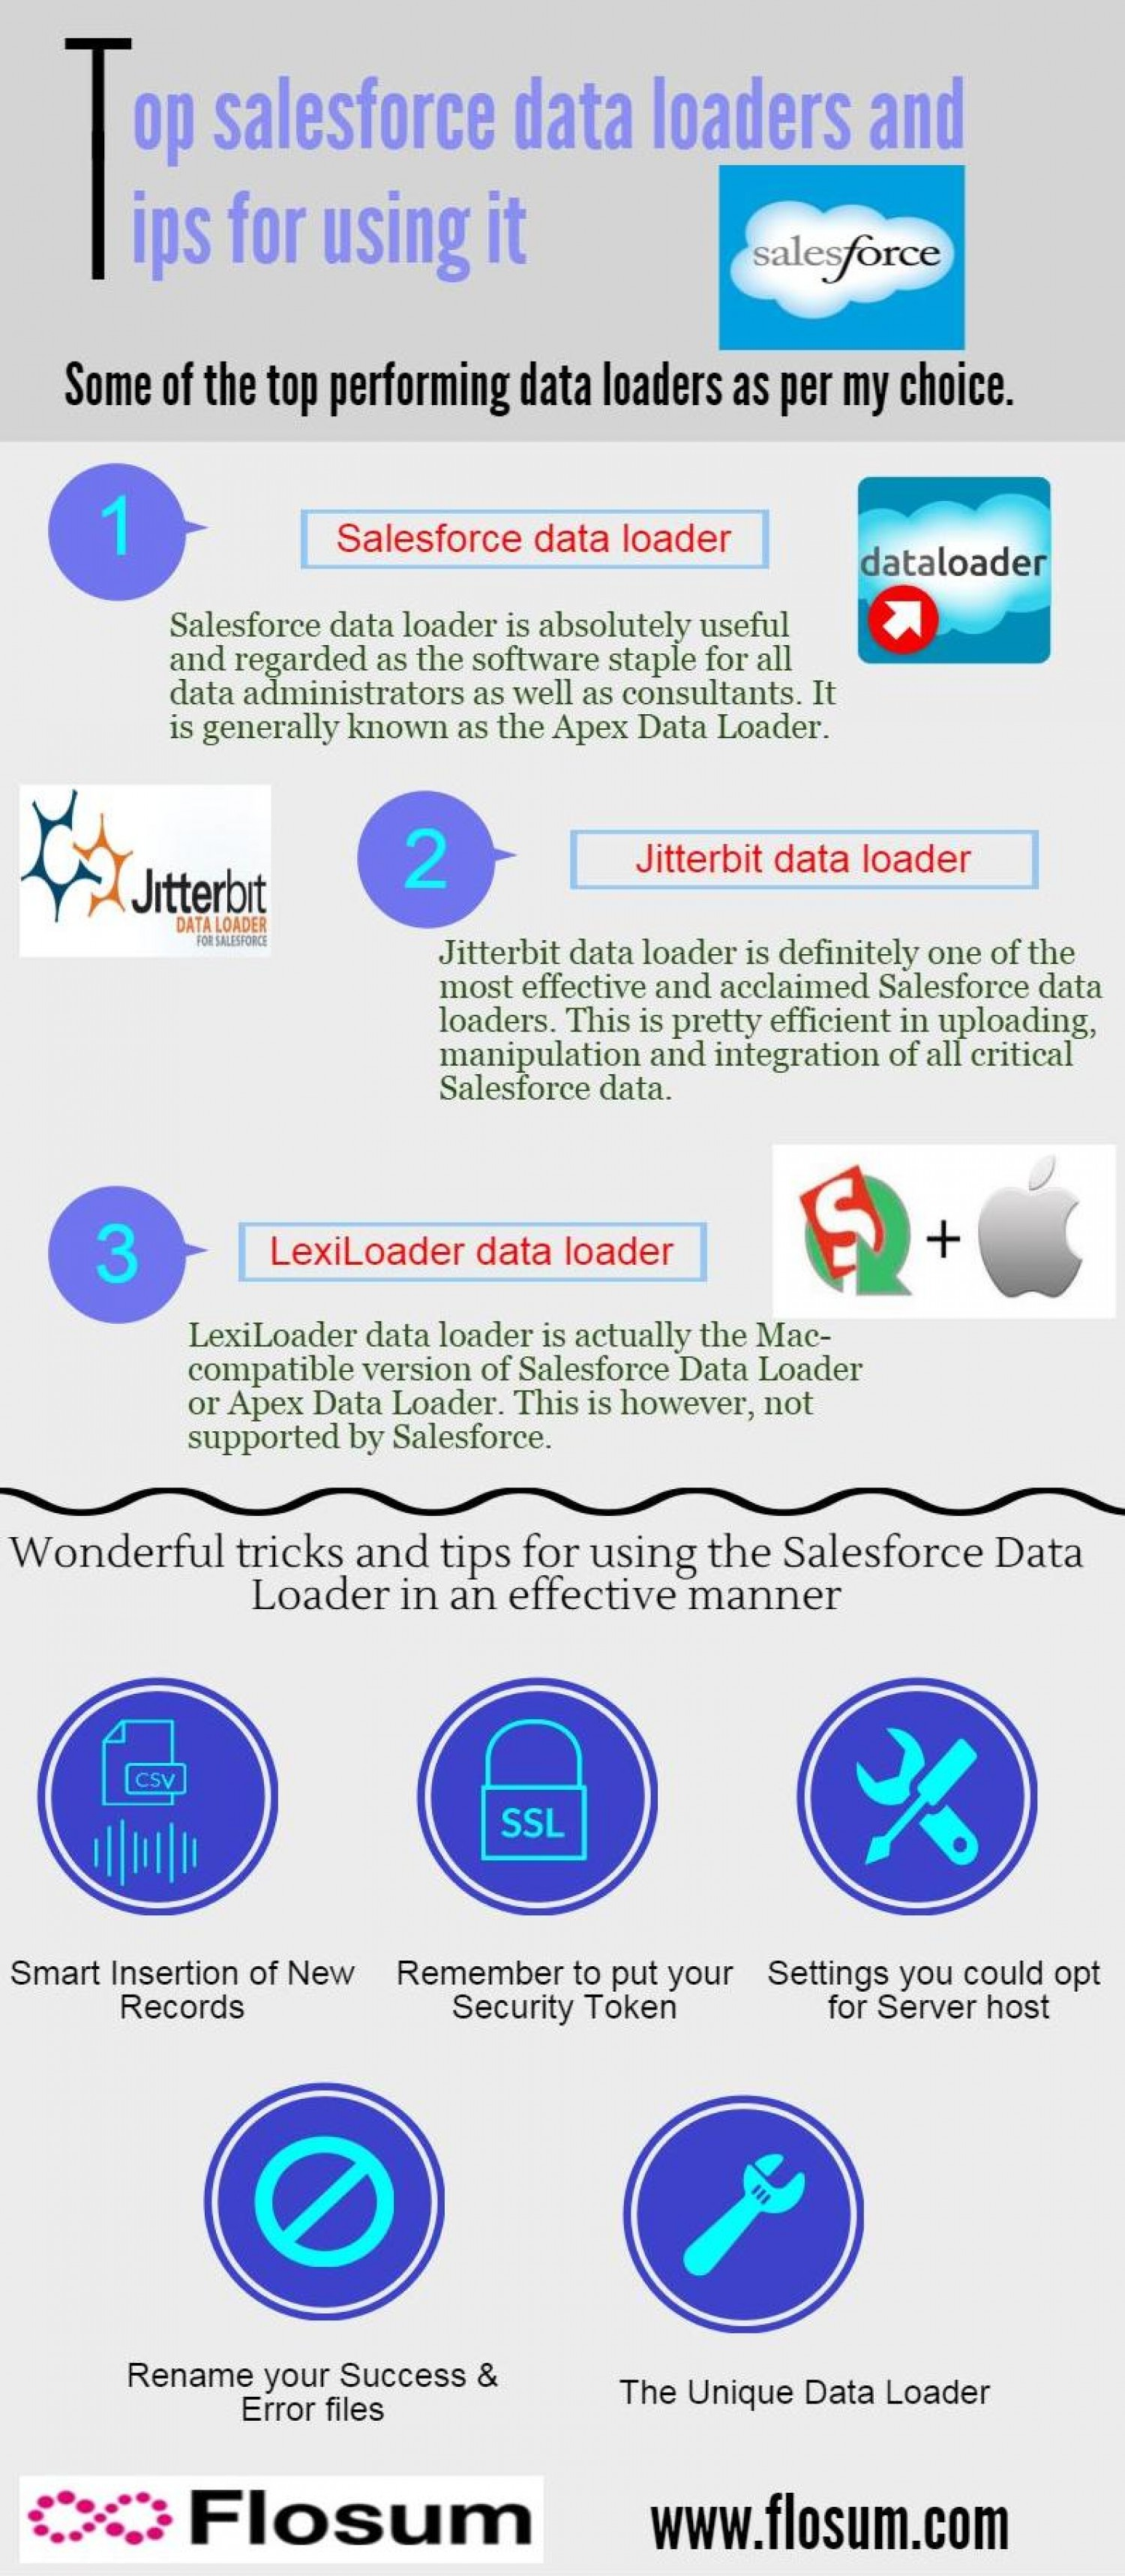 Top Salesforce Data Loaders and Tips for Using it.